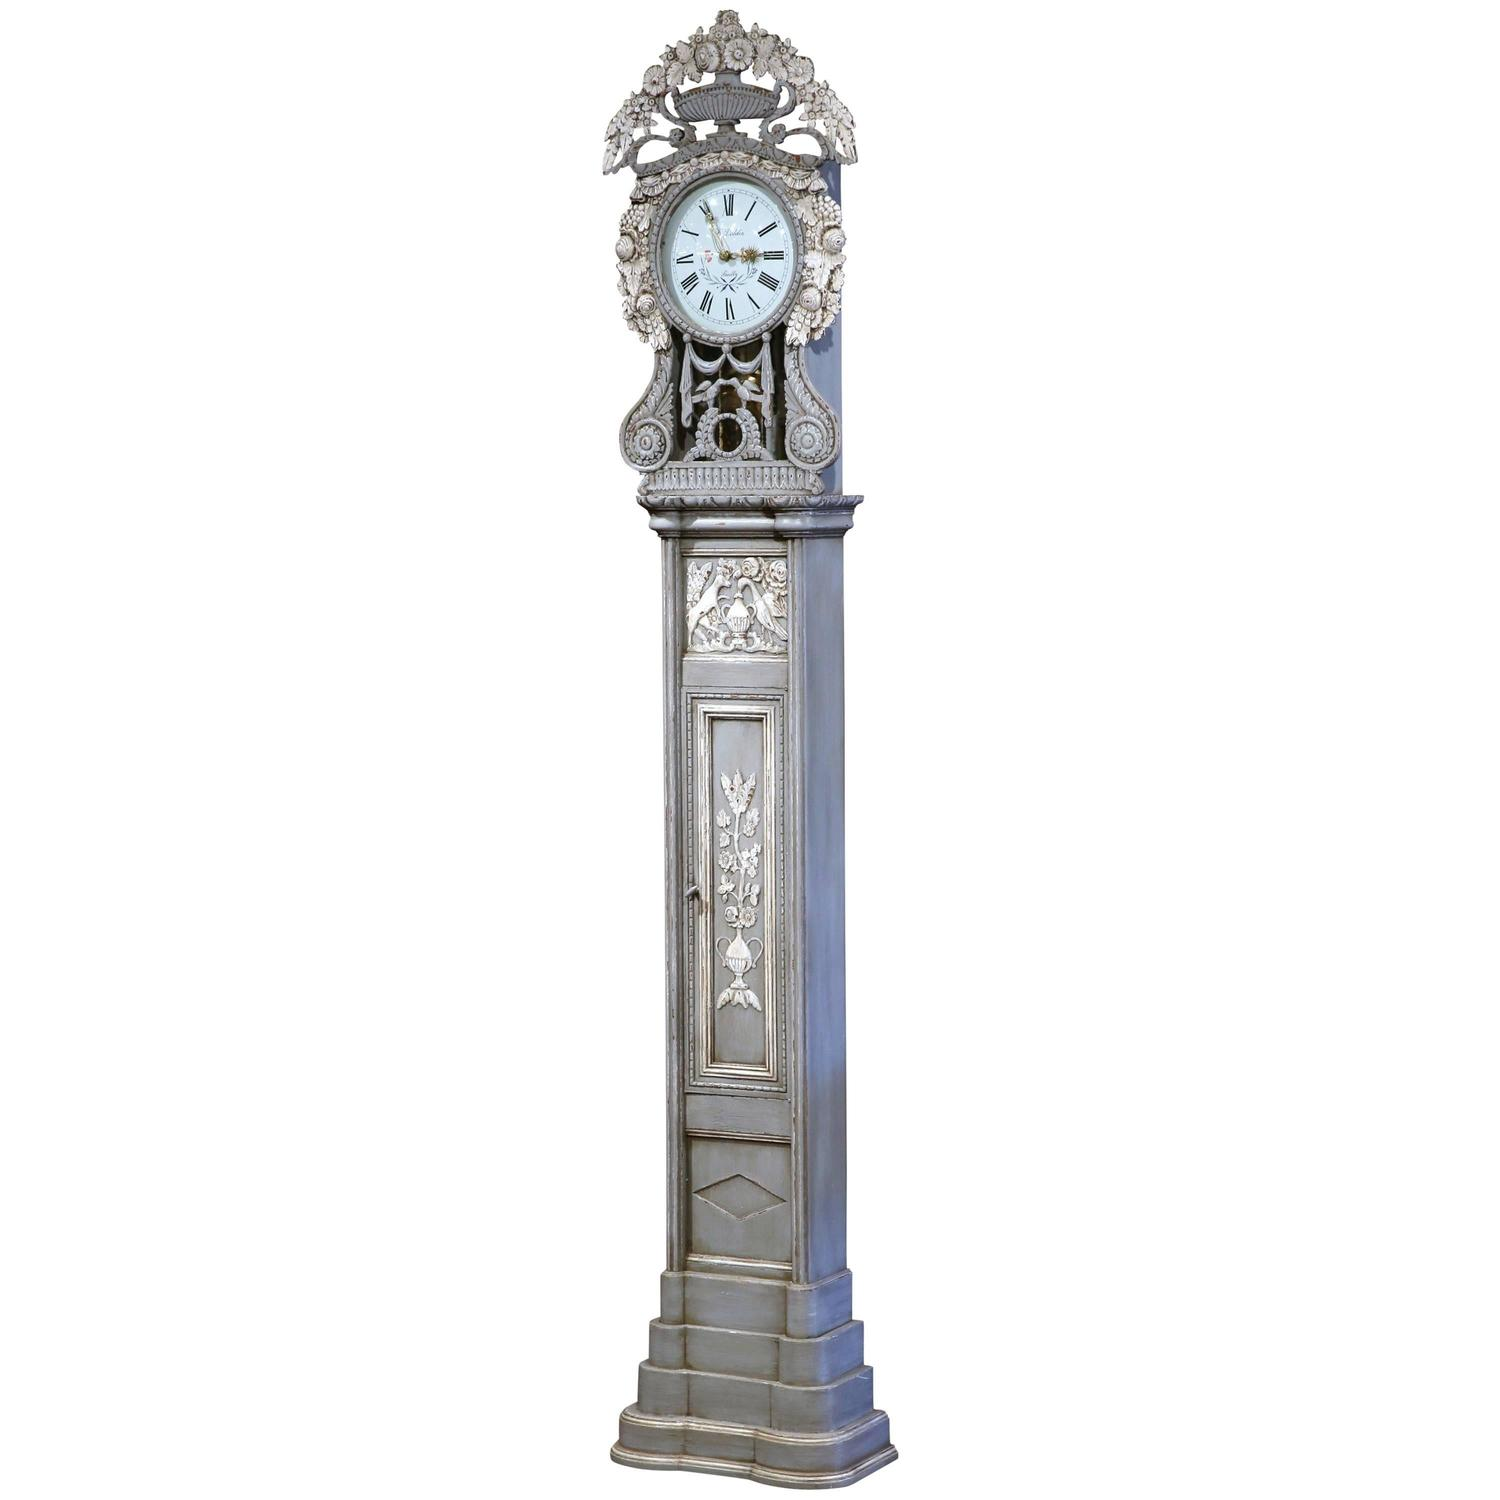 Tall Mid 20th Century French Carved Painted Grandfather Clock From Normandy